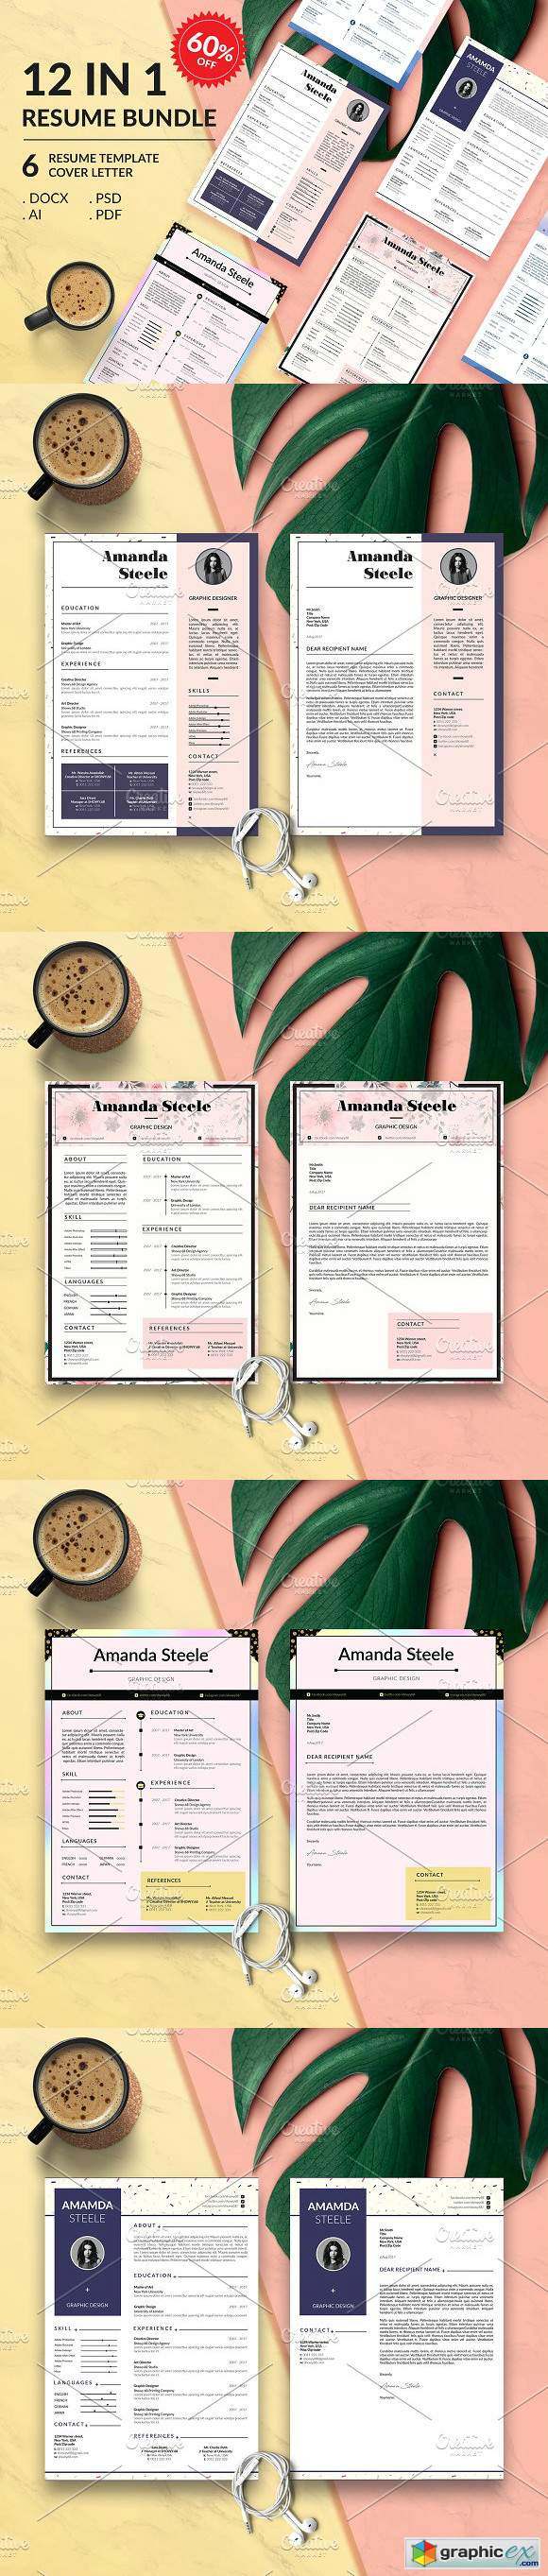 Simple Resume BUNDLE Template N